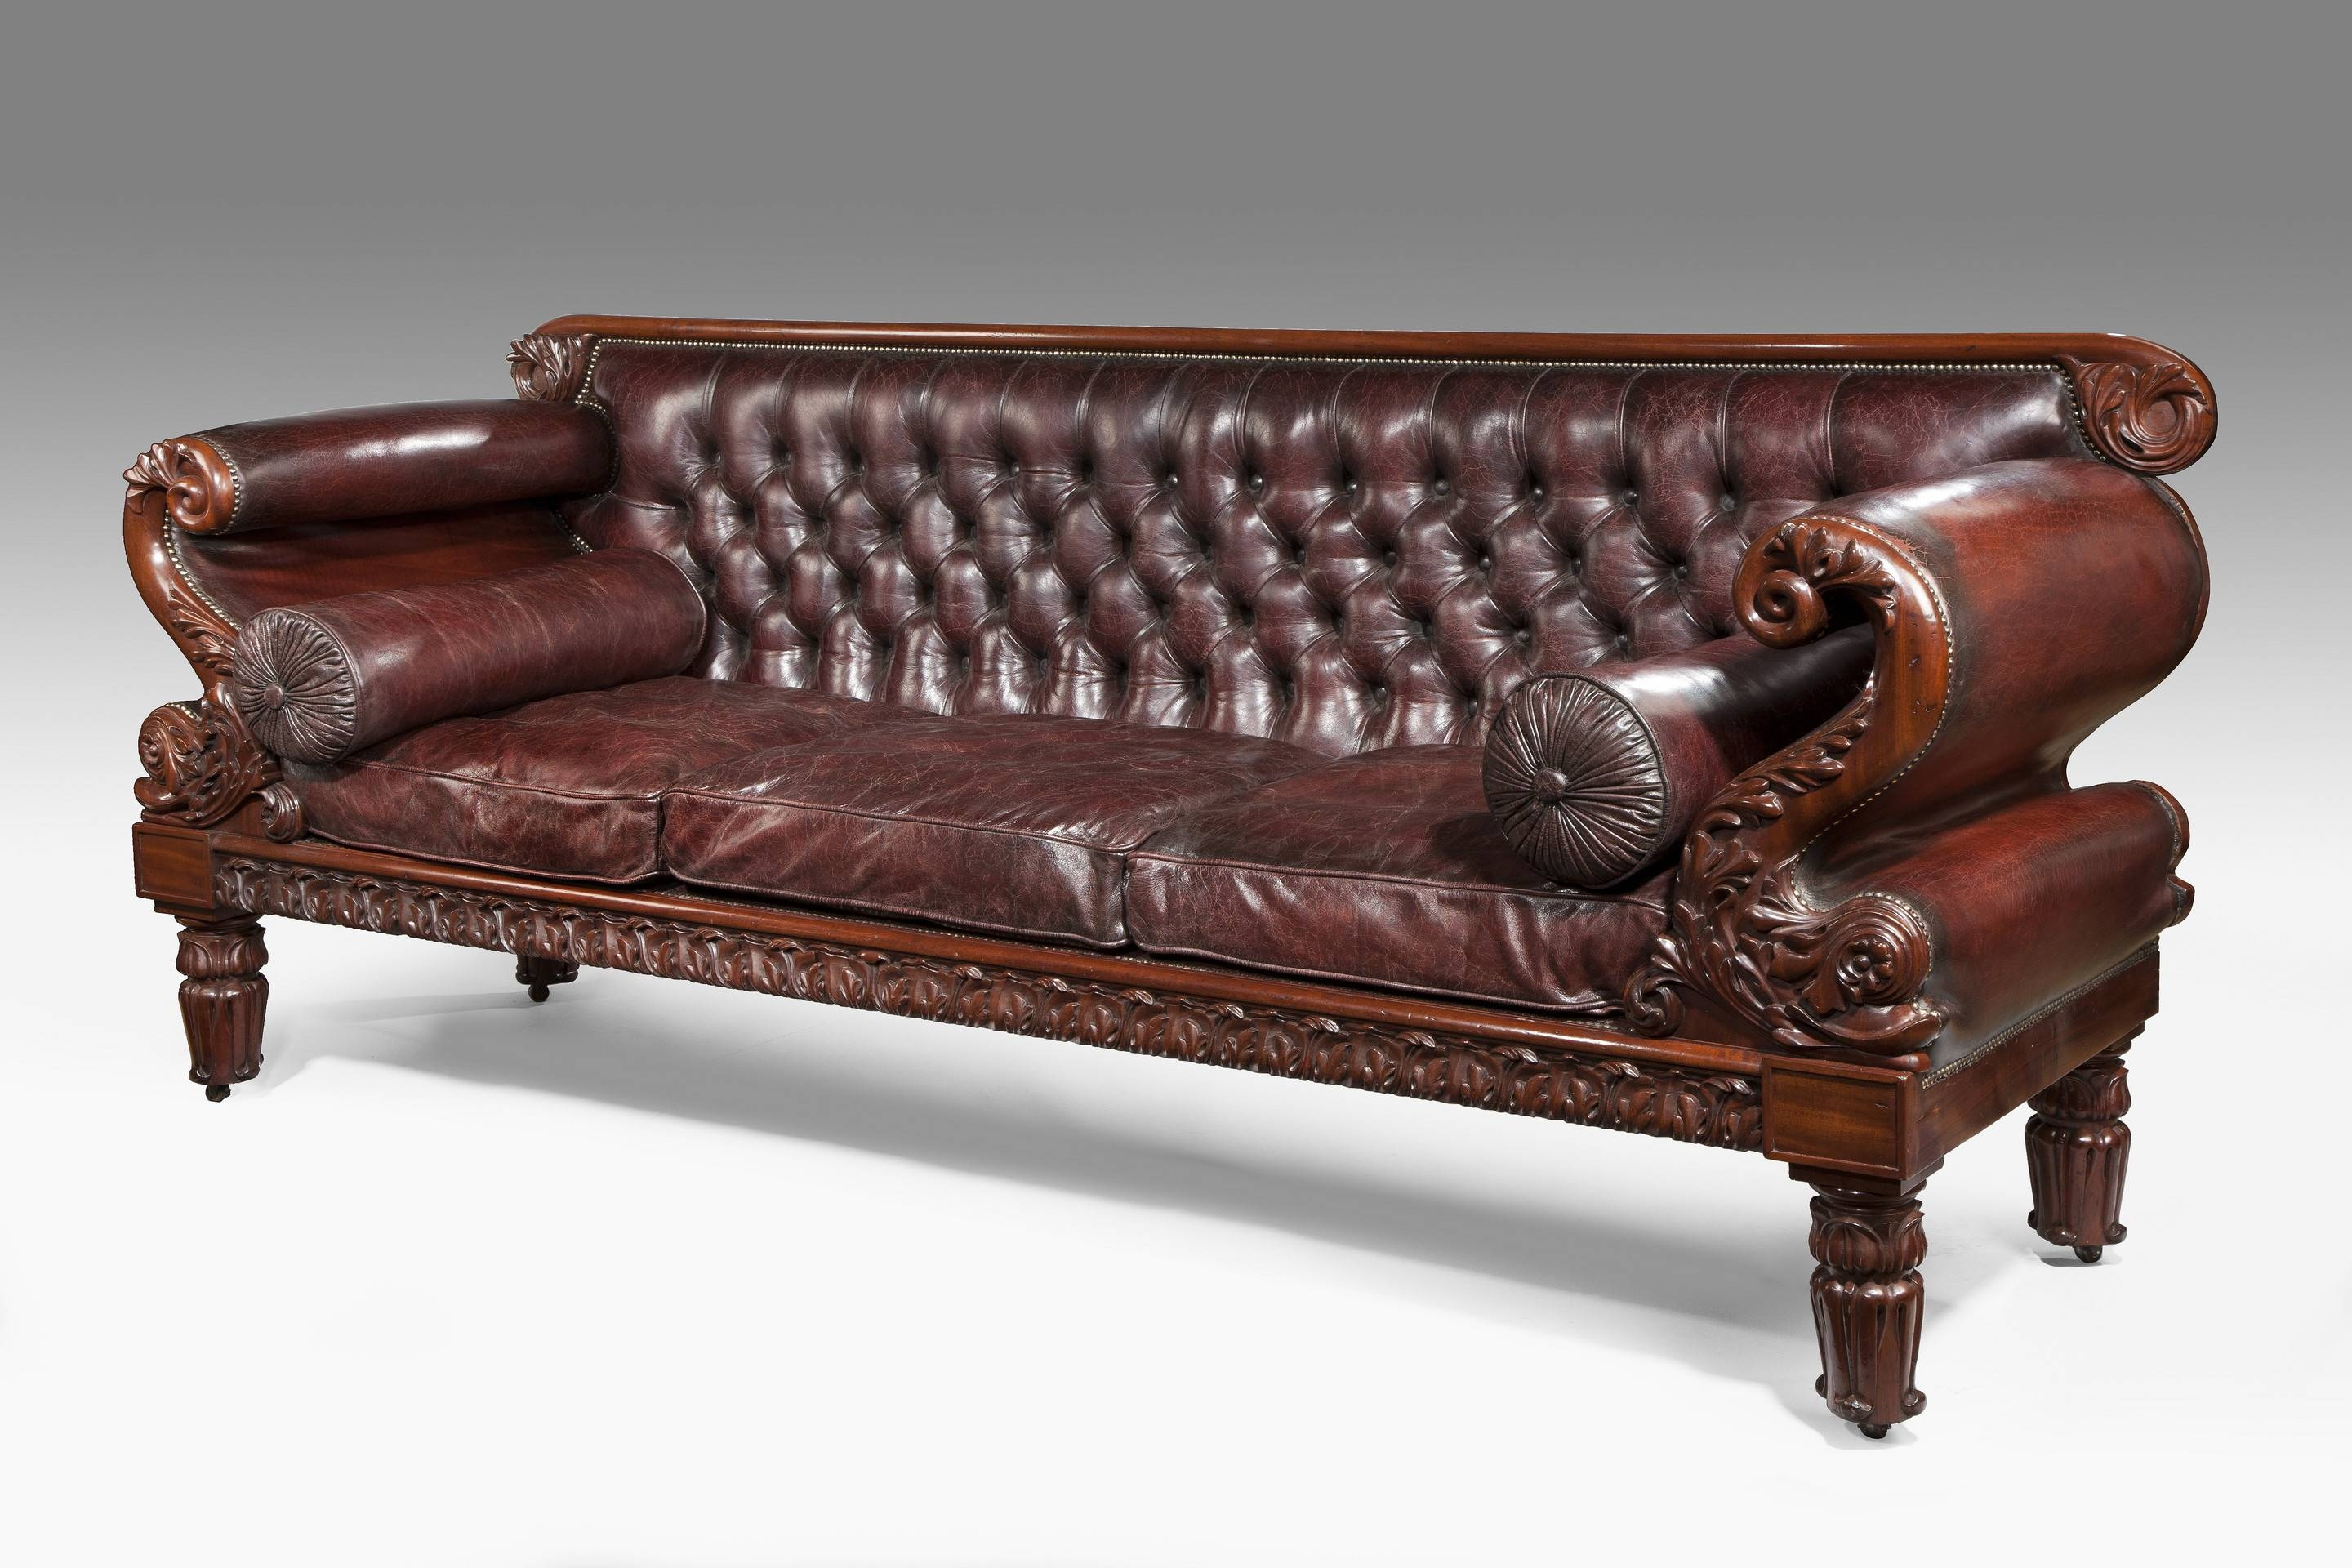 Leather Regency Antique Sofa (C. 1815 England)In The Manner Of with Antique Sofa Chairs (Image 16 of 30)